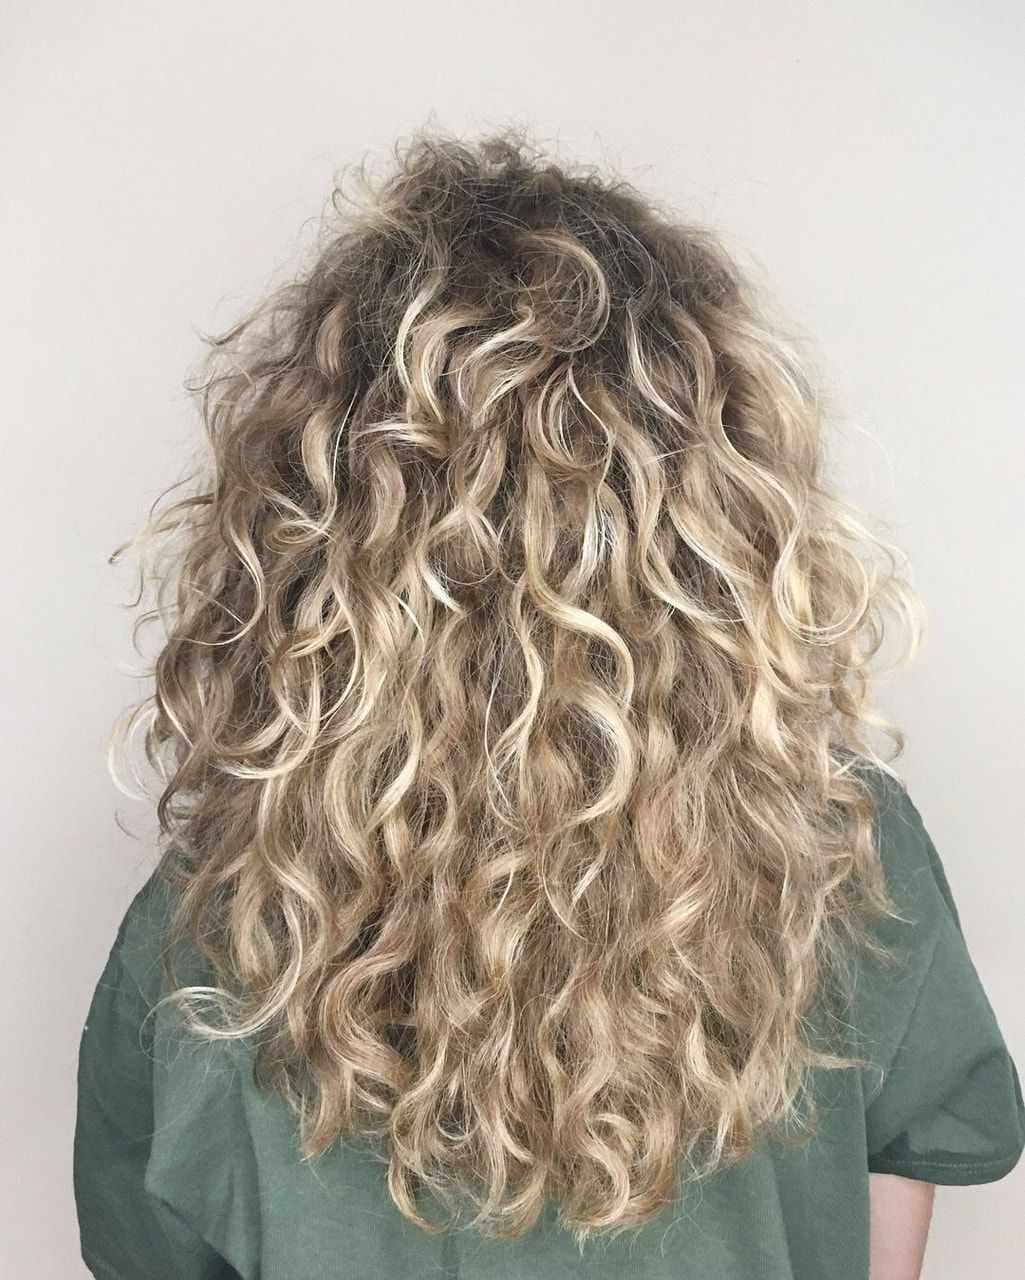 Uploaded By Shannon Find Images And Videos About Hair Hairstyle And Curly On We Heart It The App To Get In 2020 Curly Hair Styles Hair Styles Long Hair Styles